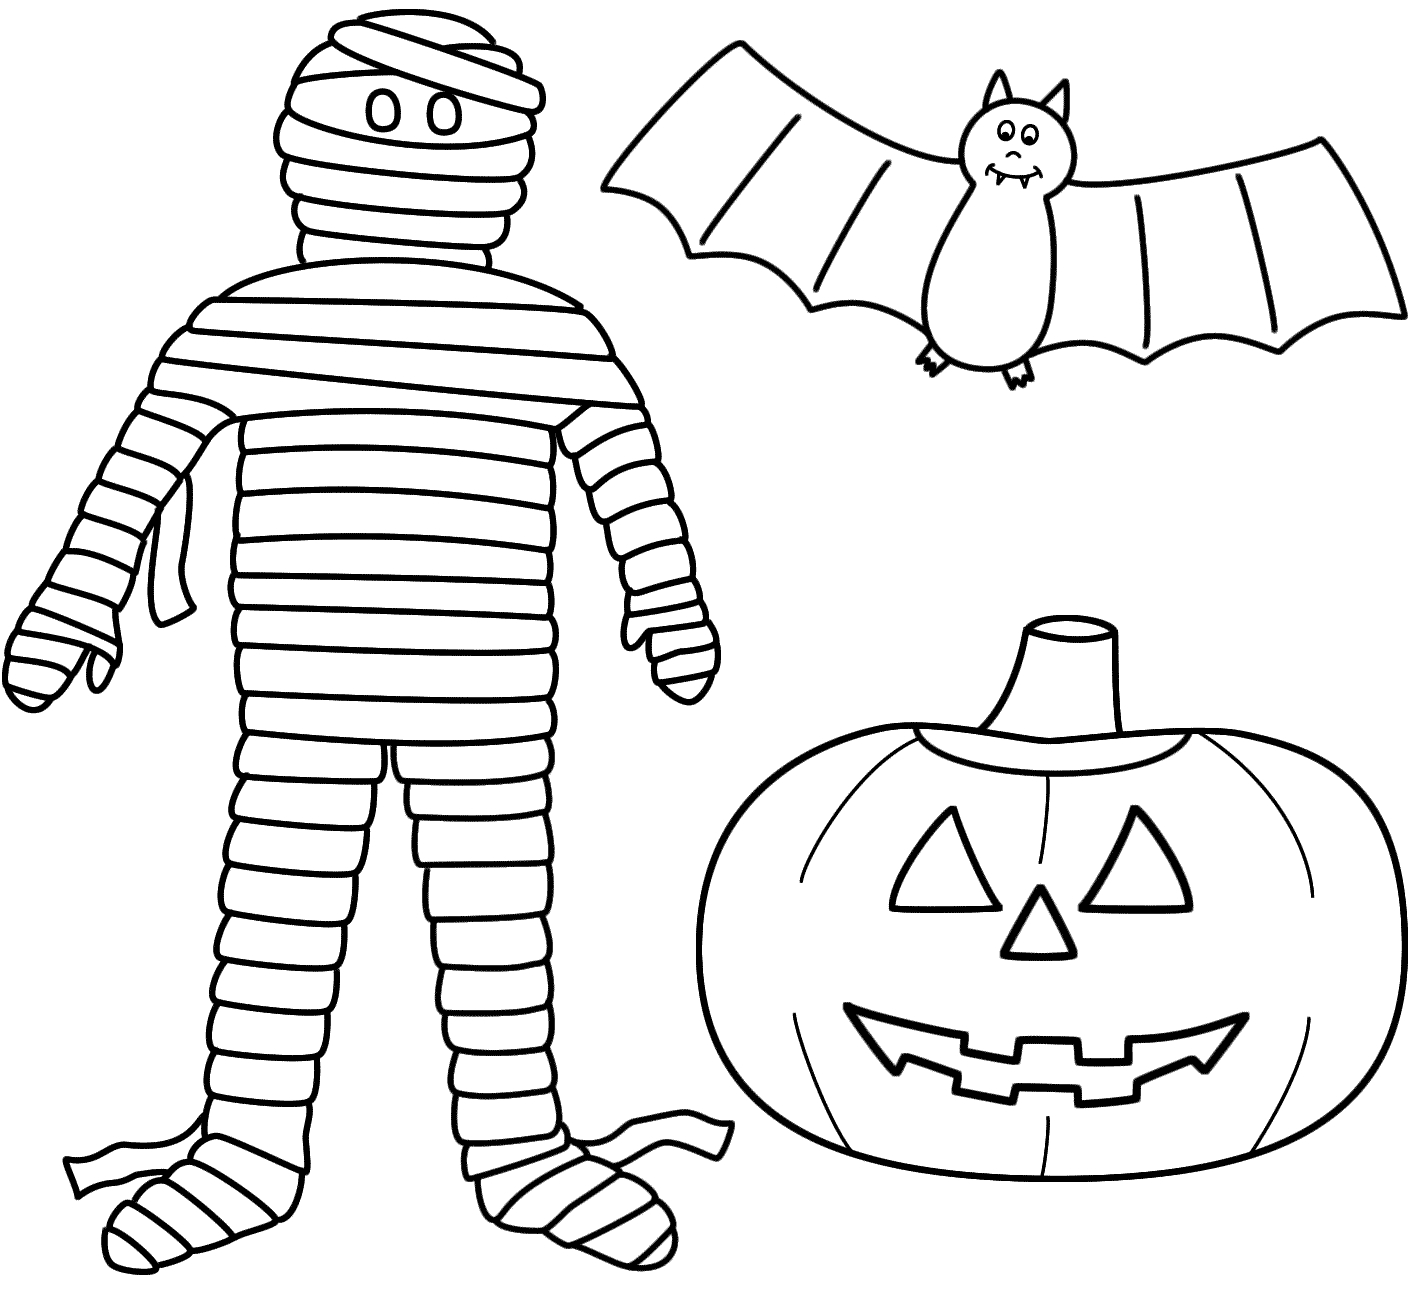 Egyptian Mummy Coloring Pages Free and Animage Me at Bertmilne ...